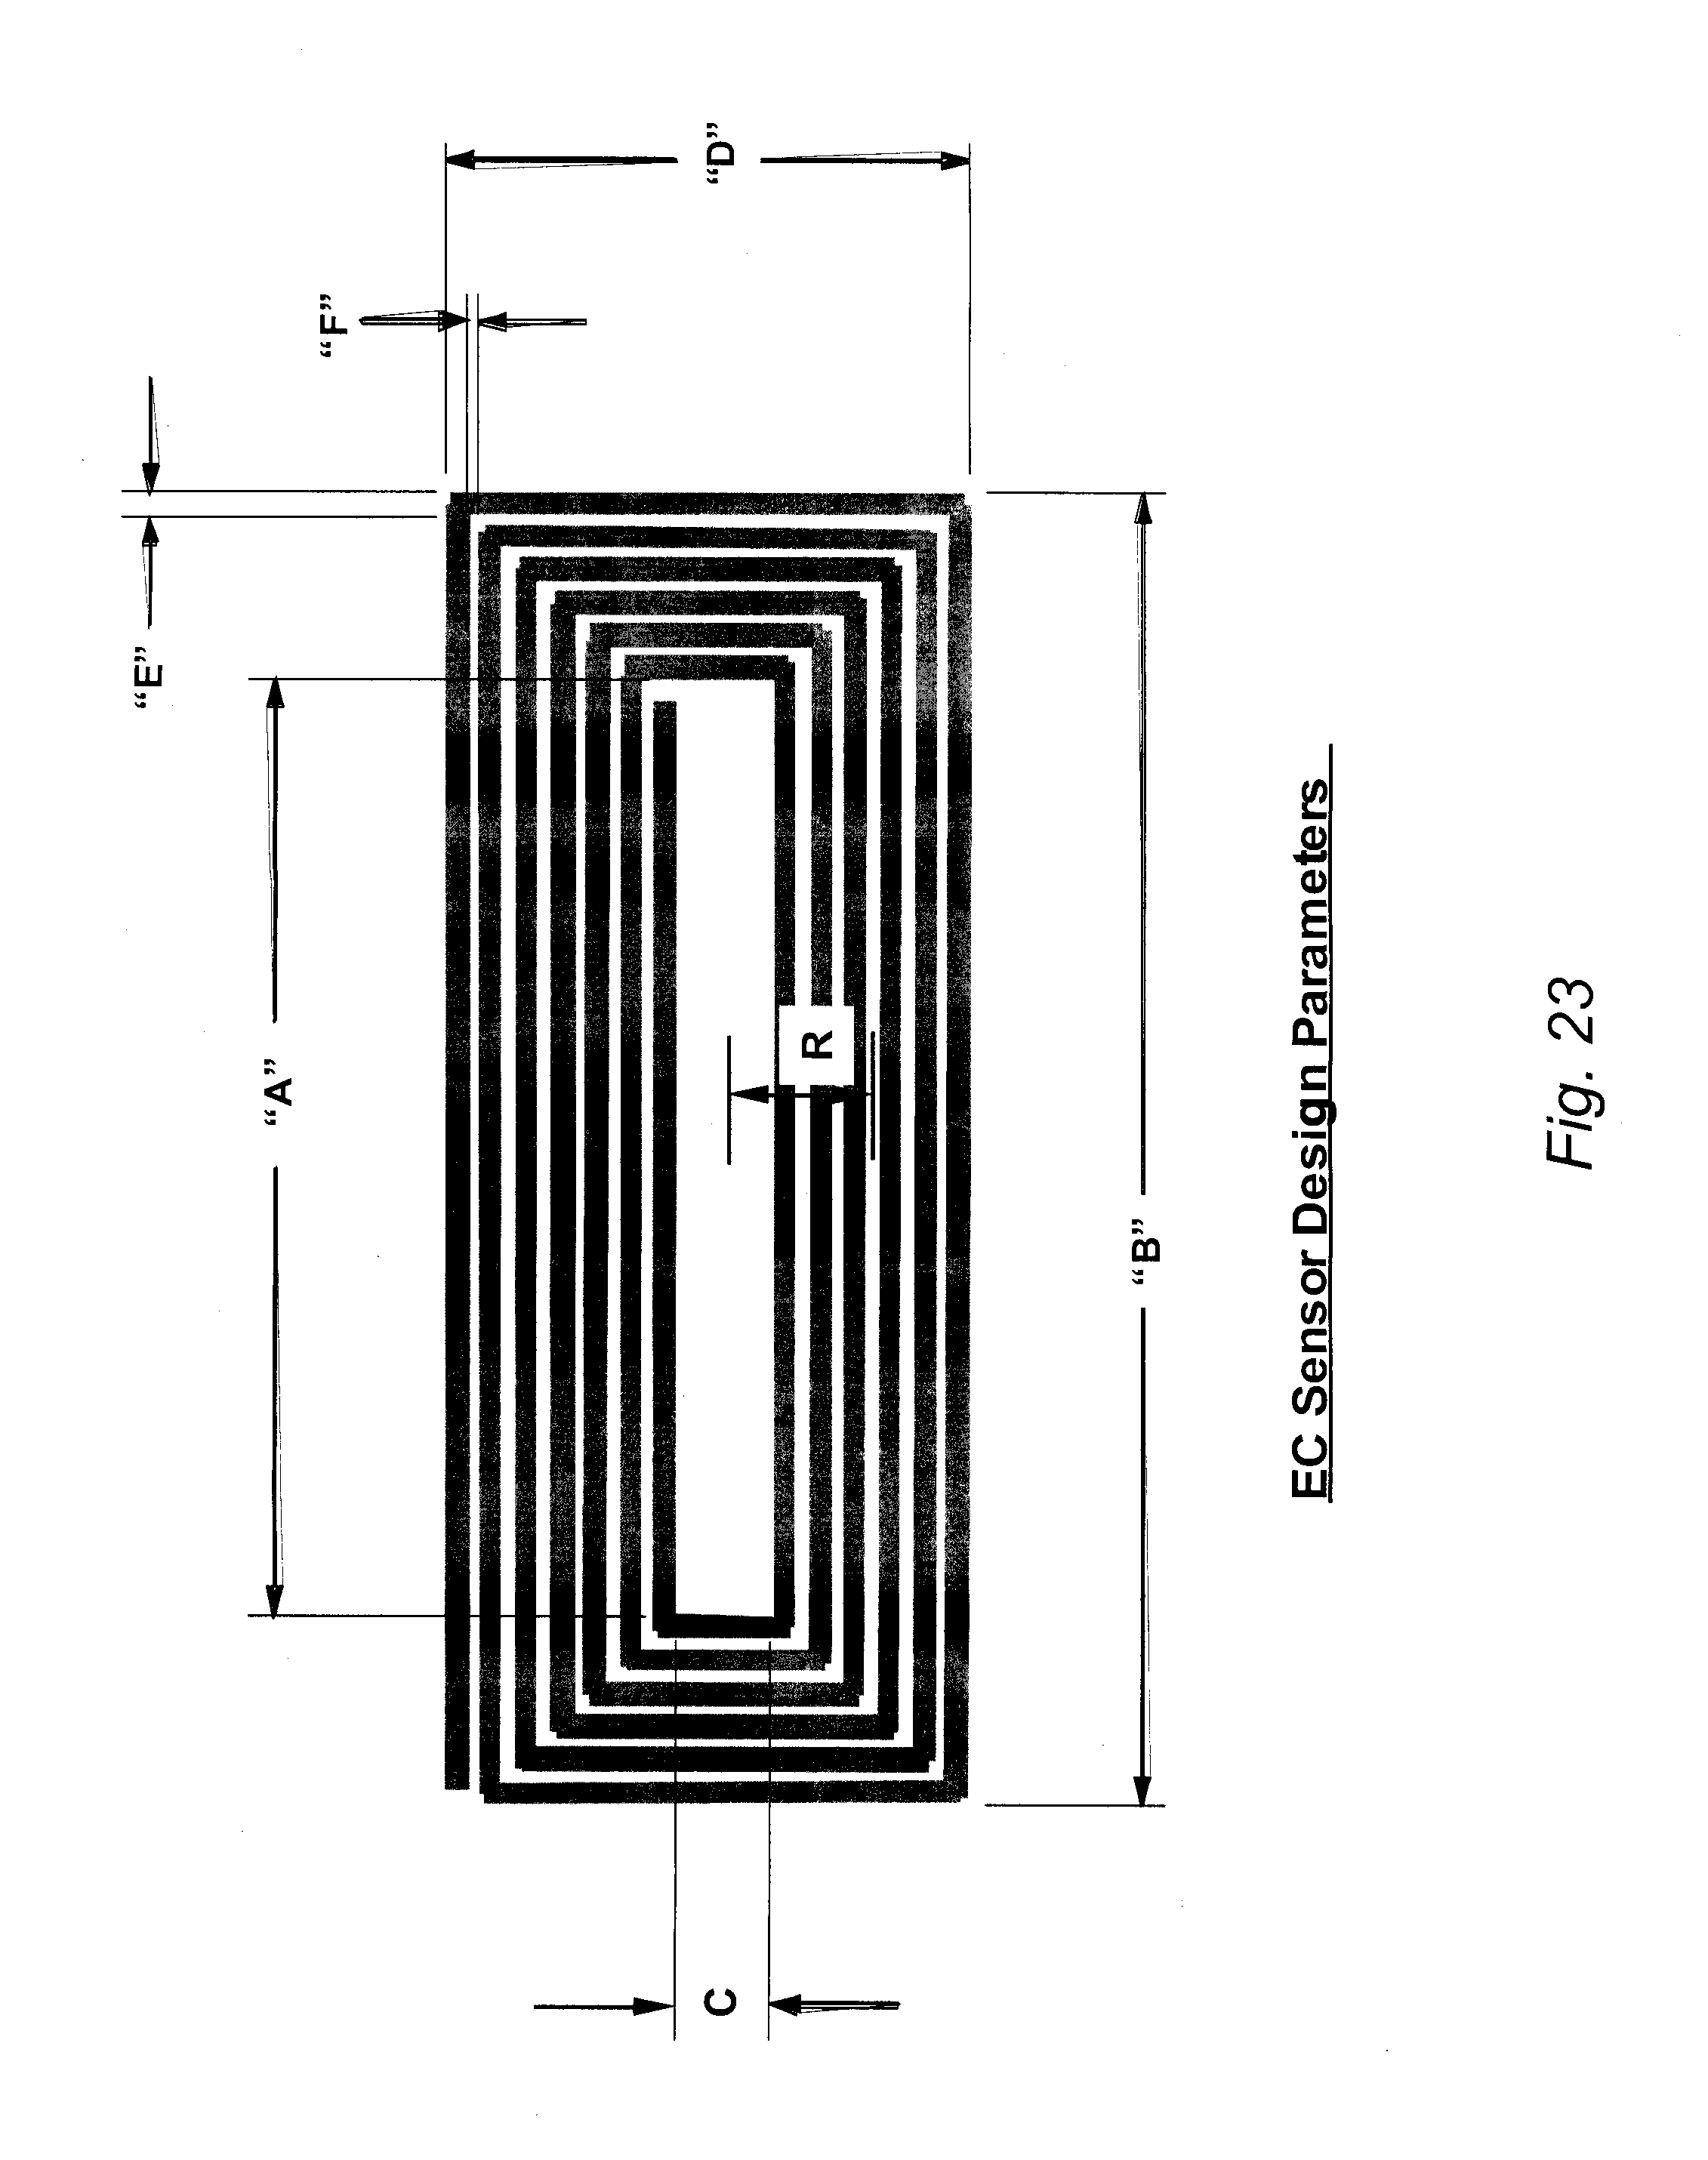 Patente Us8013600 Mountable Eddy Current Sensor For In Situ Remote Circuit Diagram On Patent Drawing